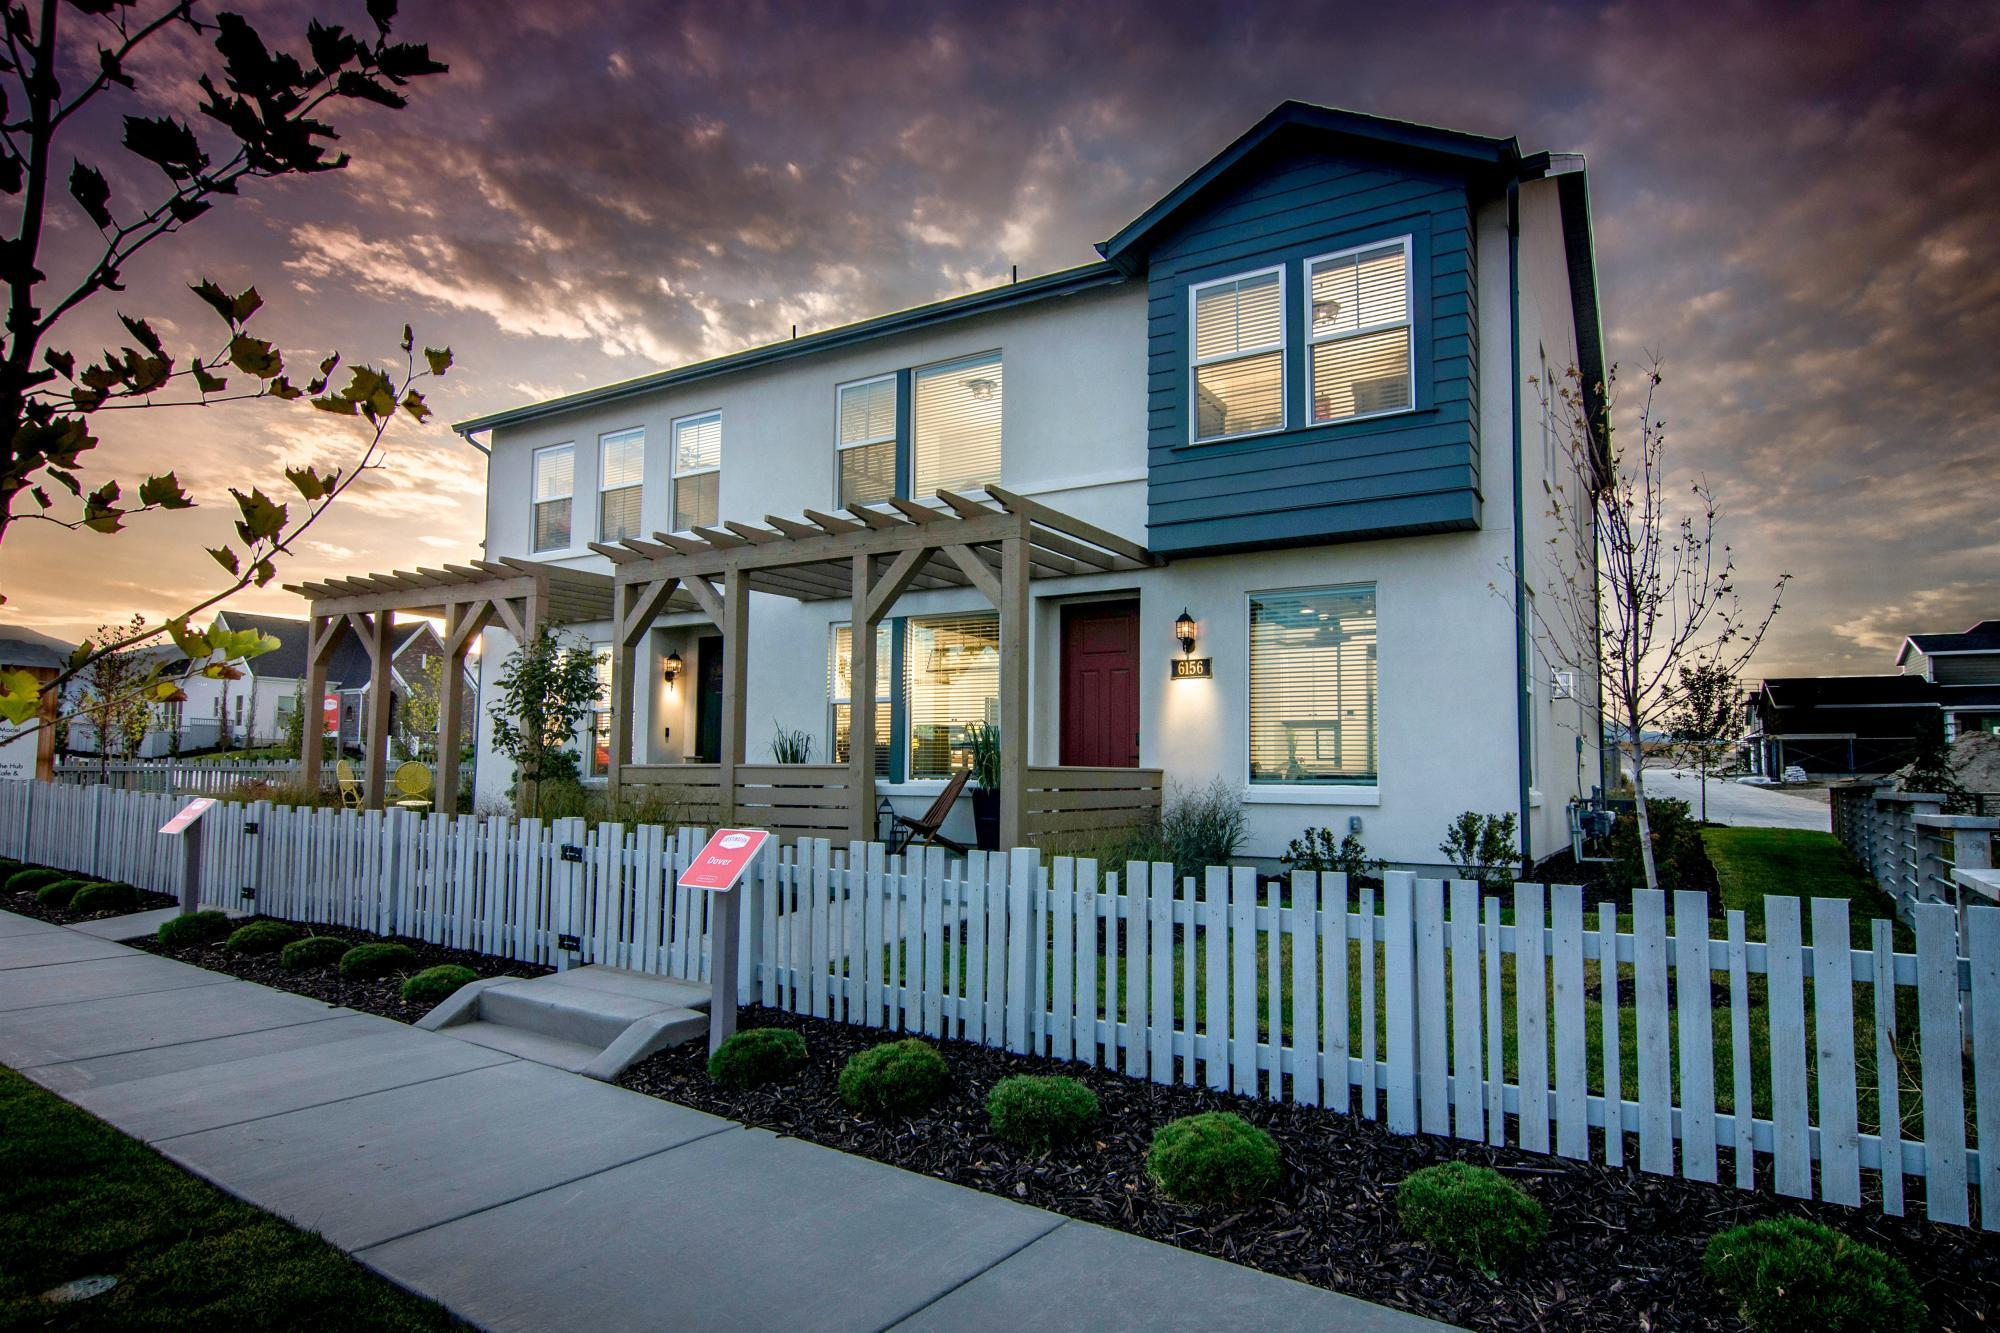 'Daybreak - Highland Park' by Destination Homes in Salt Lake City-Ogden